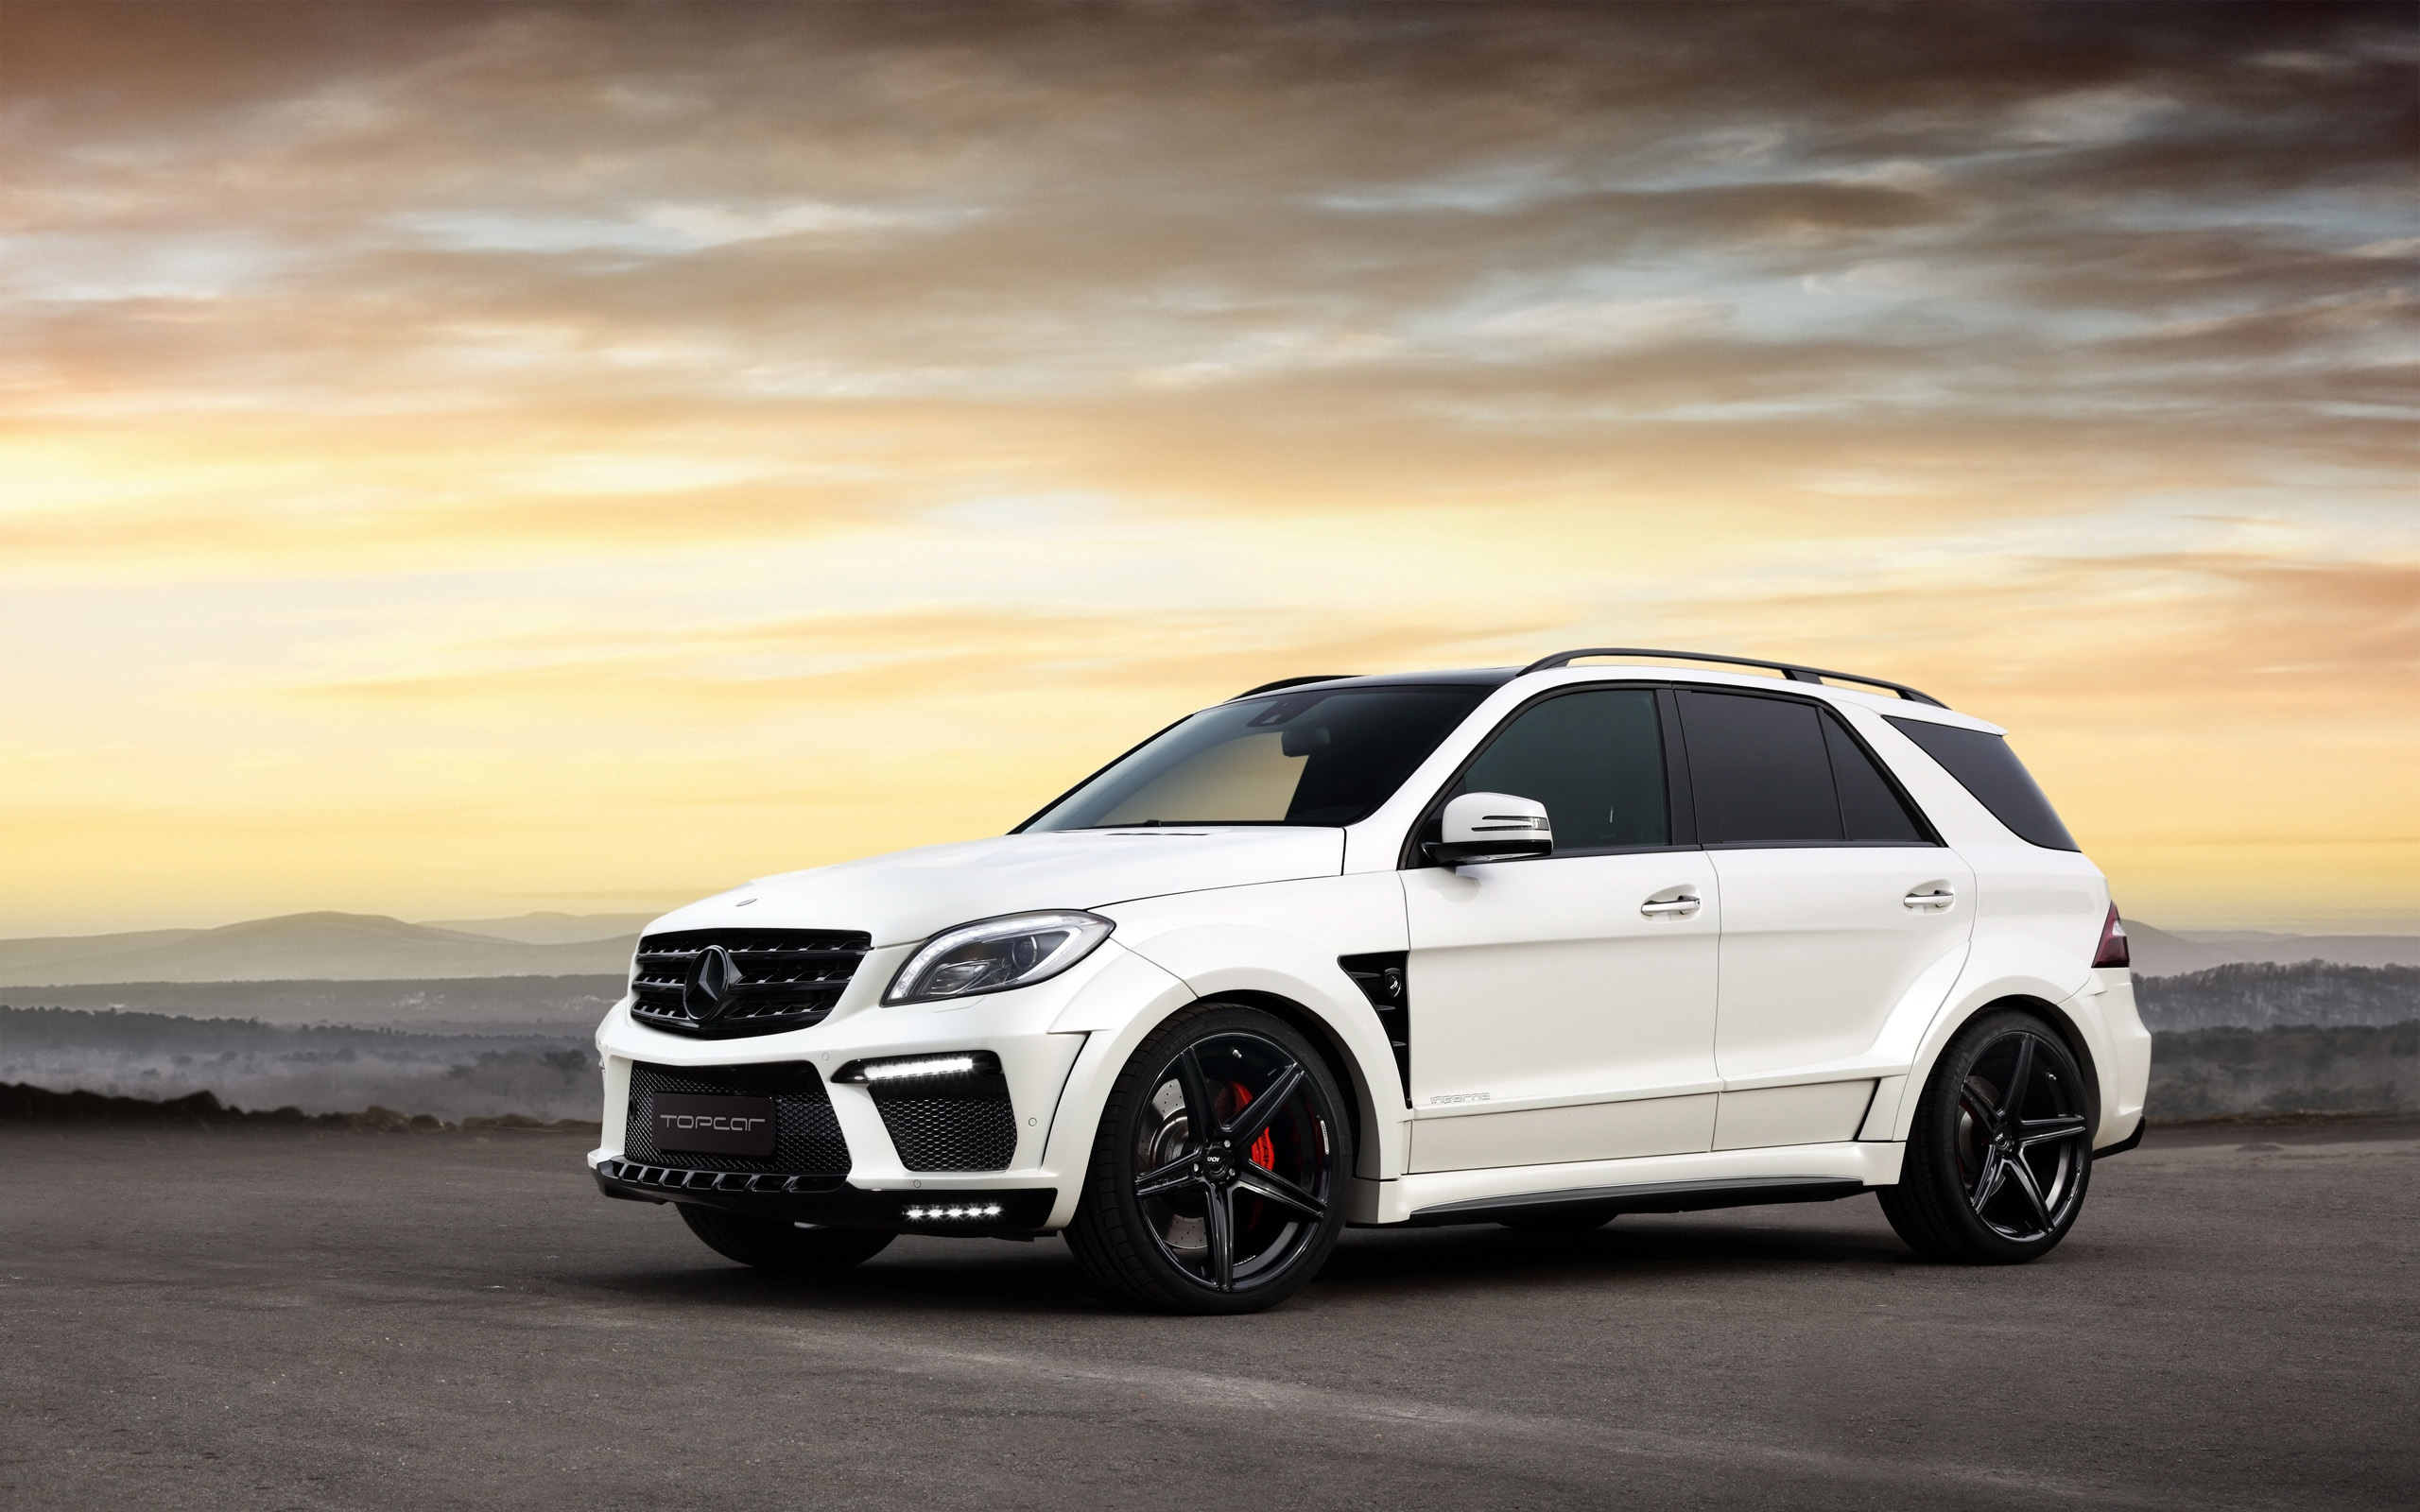 2017 mercedes benz ml63 amg car photos catalog 2018